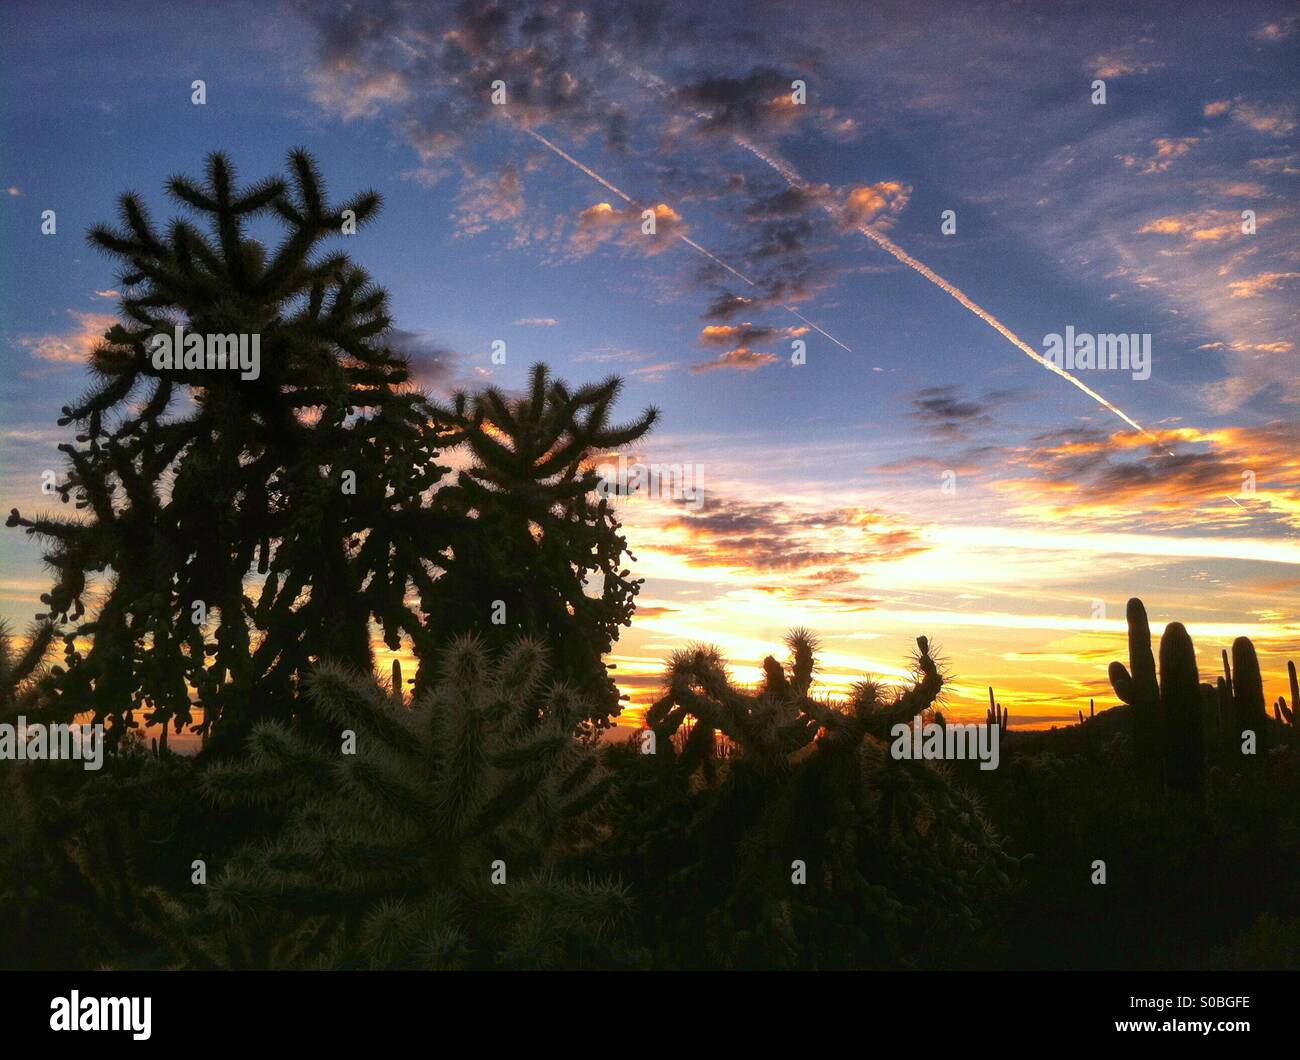 Fruit-chain cholla cactus at sunset. Sonoran desert of Arizona. USA - Stock Image